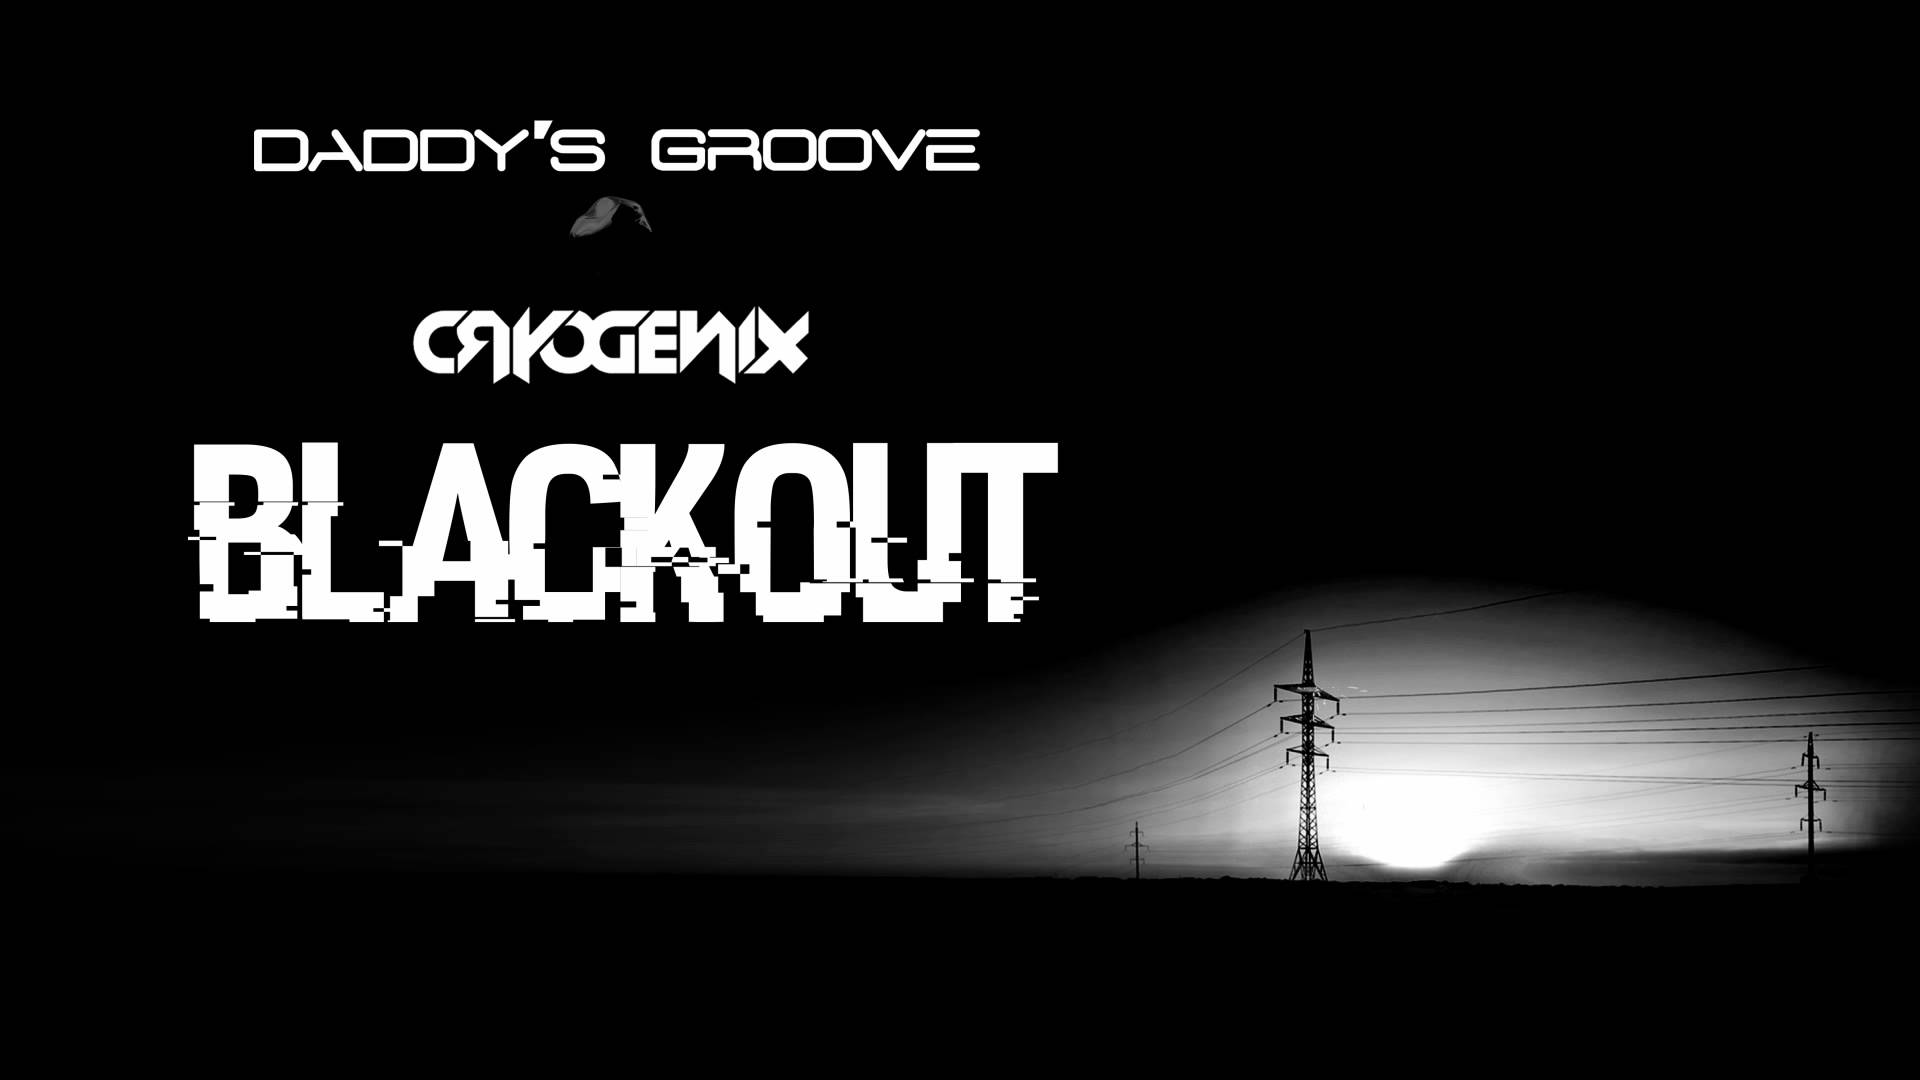 Daddy's Groove & Cryogenix – Blackout (Club Mix) [Cover Art]